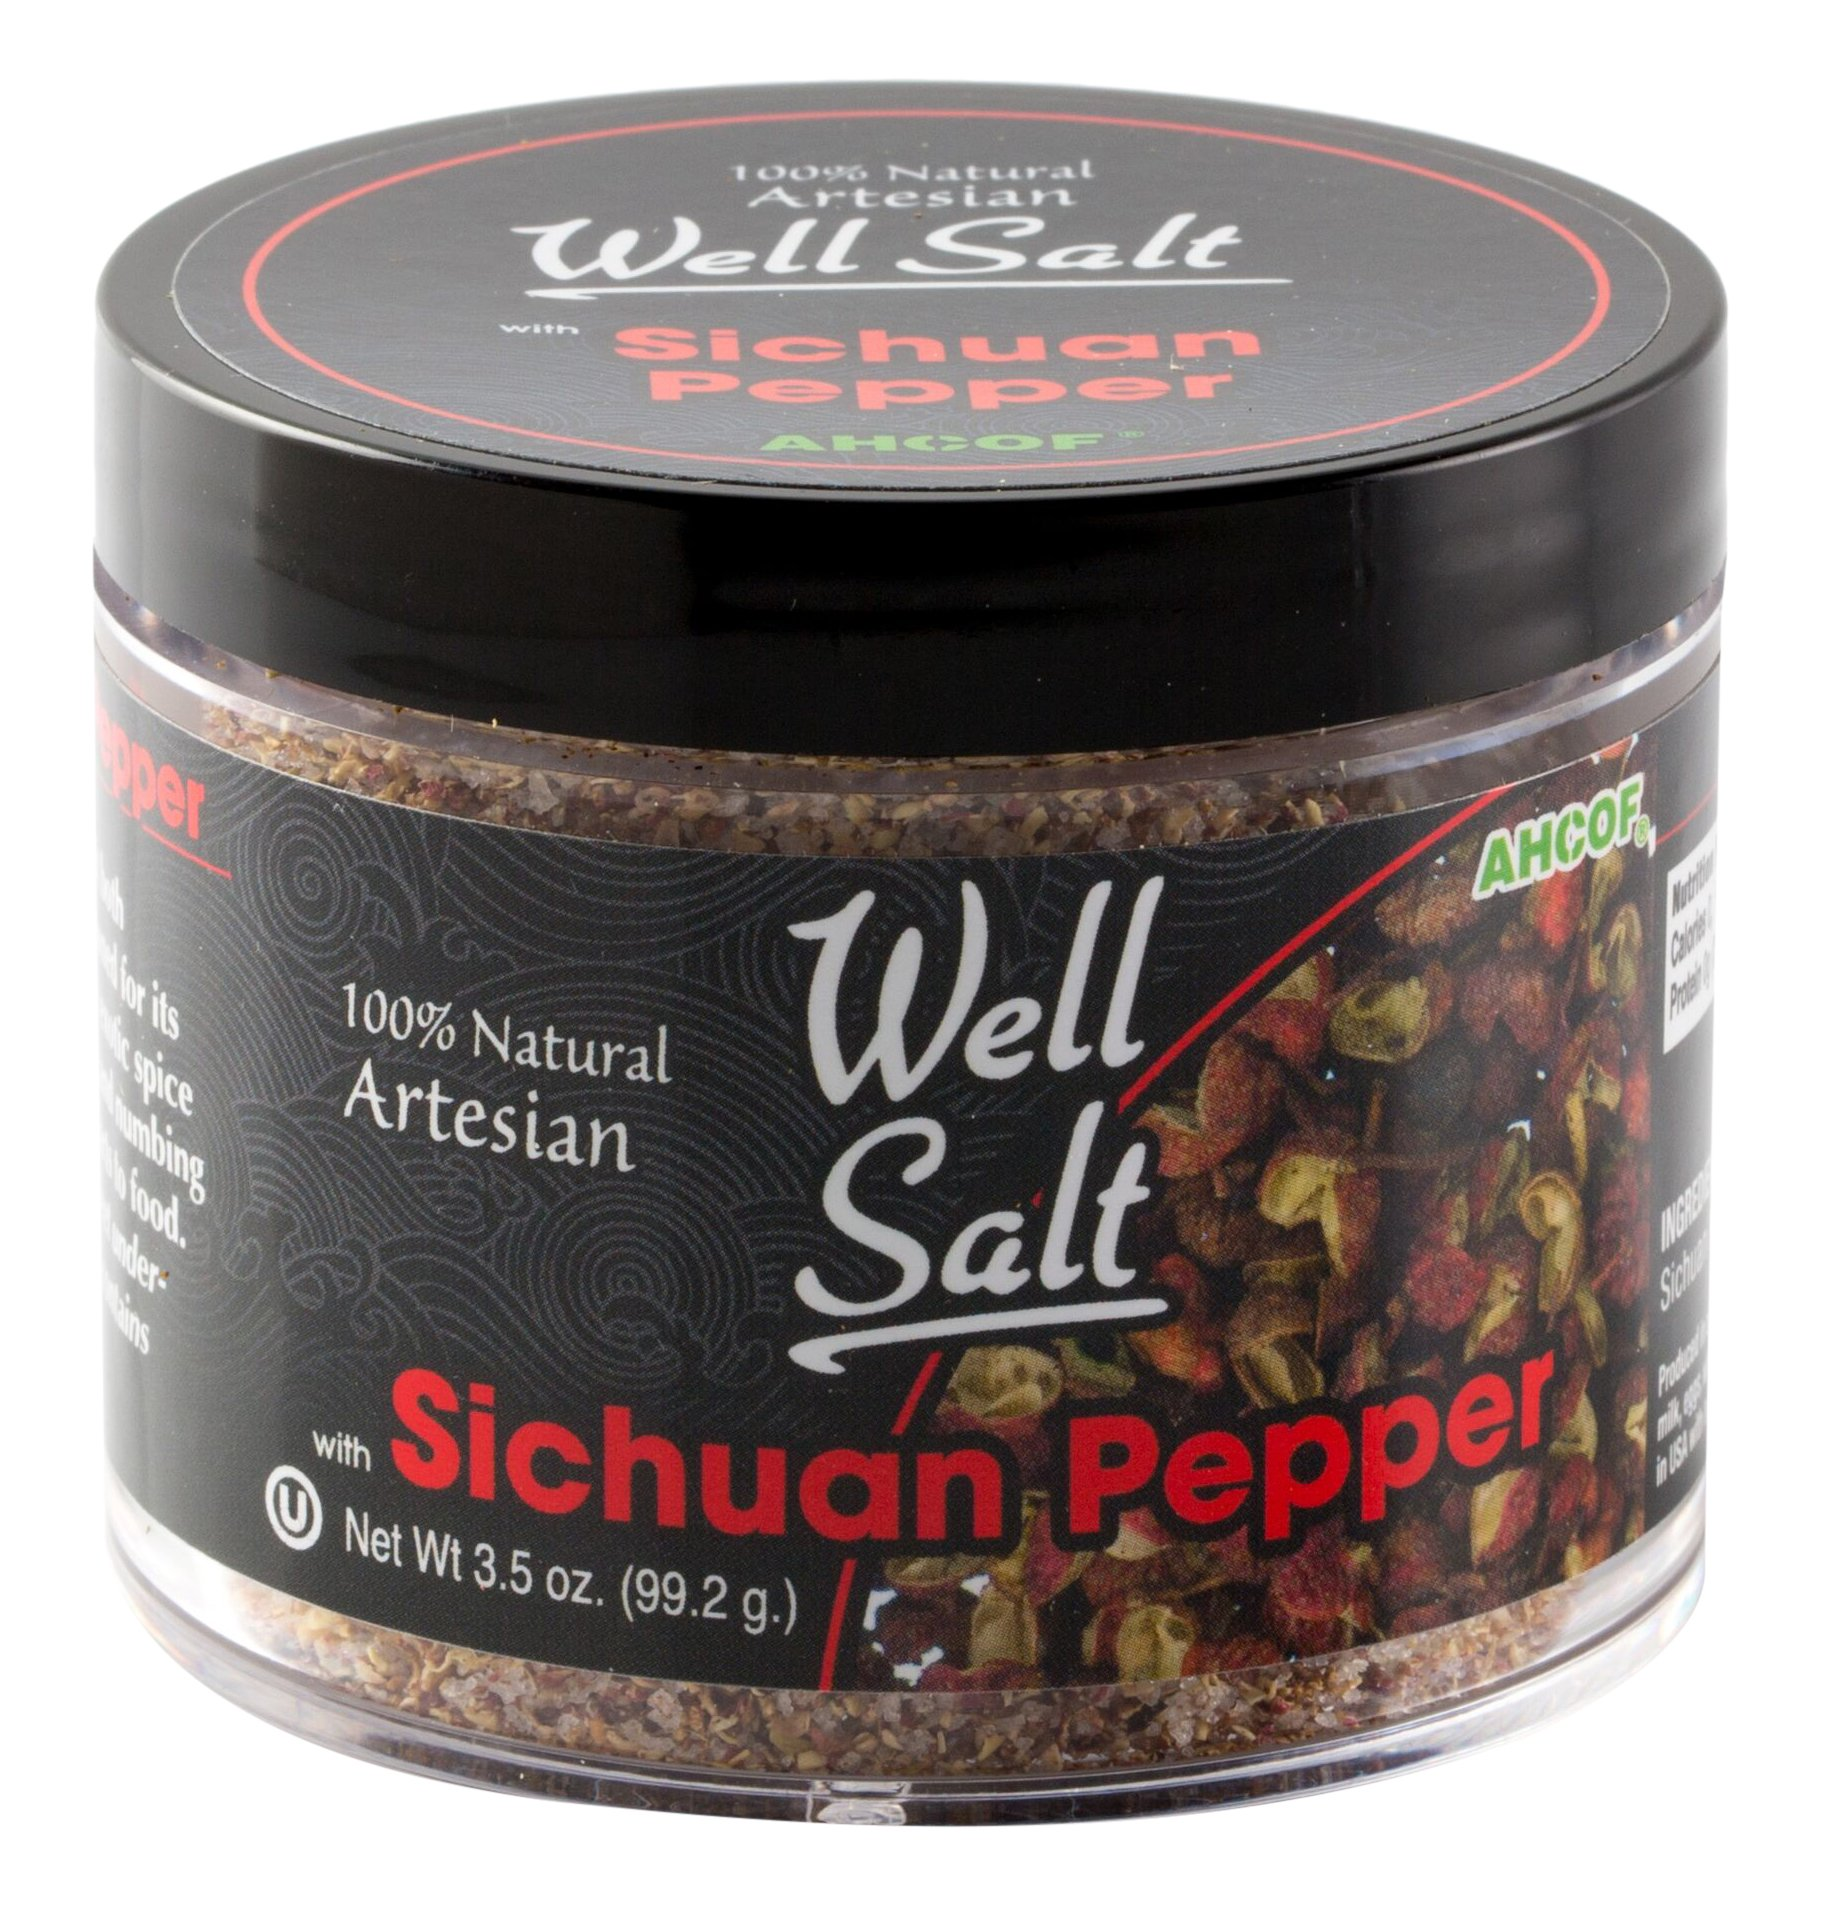 AHCO Foods 100% Natural Artesian Well Salt, Sichuan Pepper, 3.5 Ounce